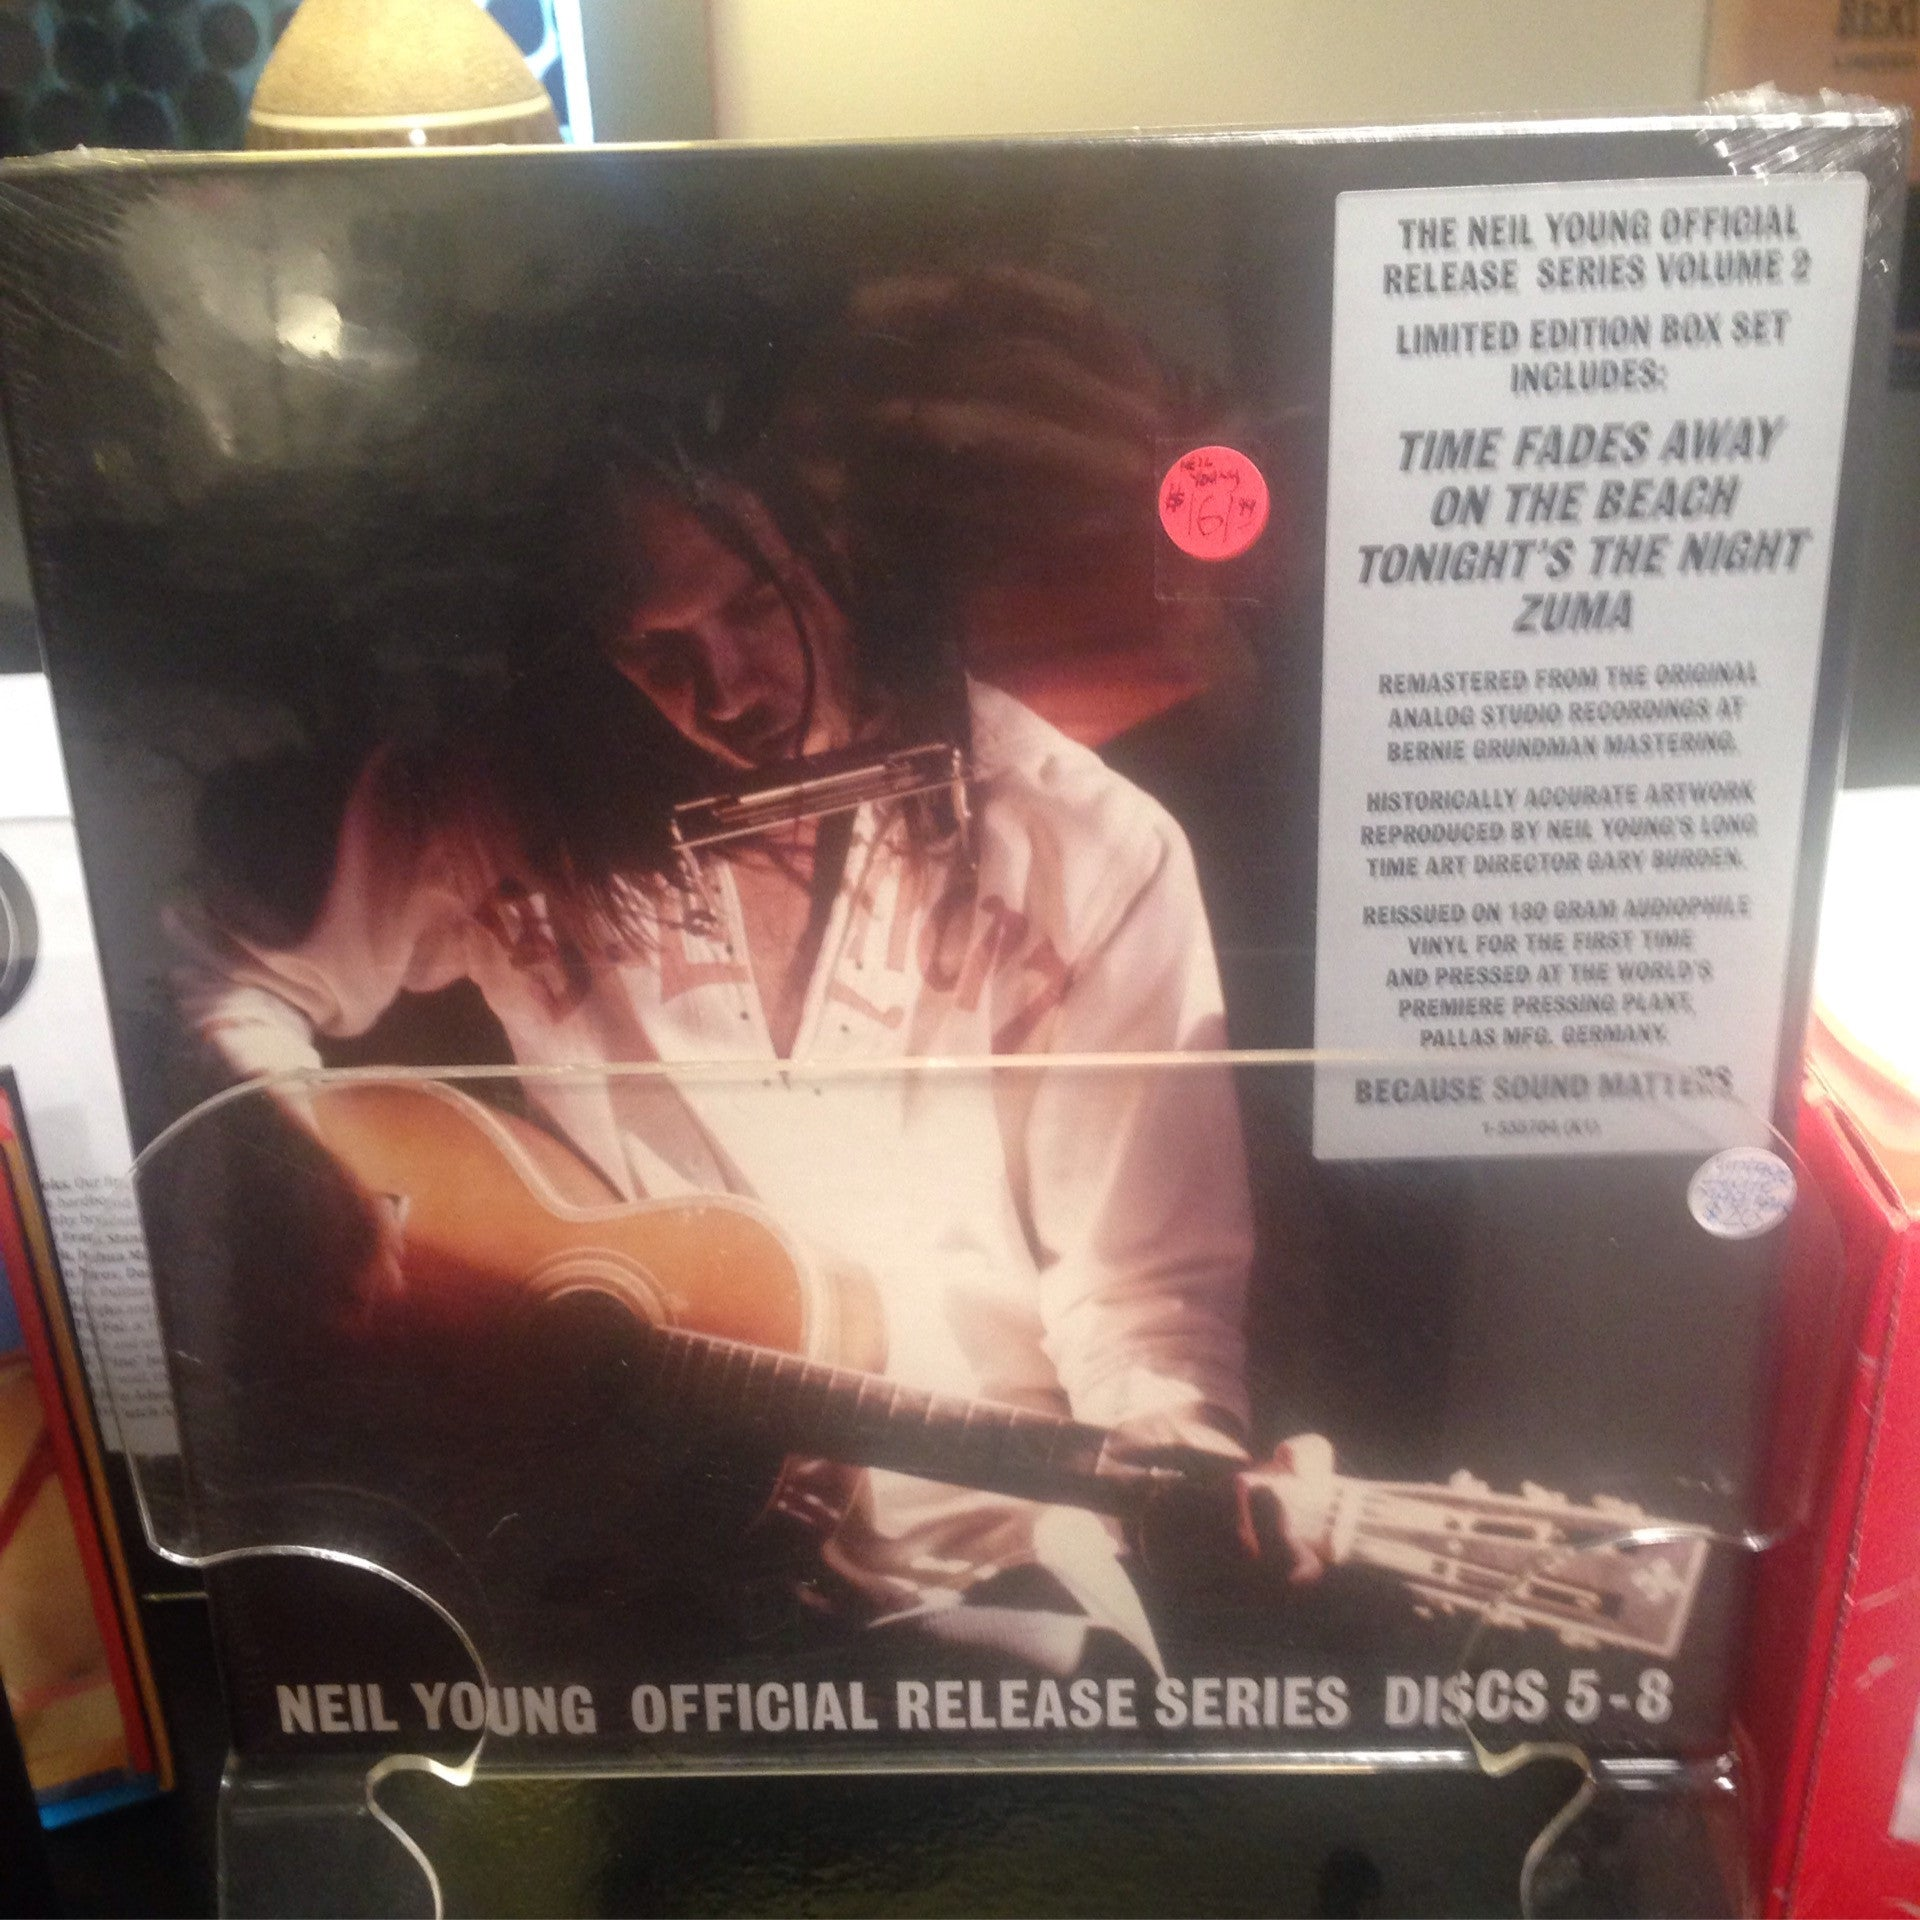 Neil Young - Release Series Vol 2 LP Box Set - Time Fades Away, On The Beach, Tonight's The Night, Zuma